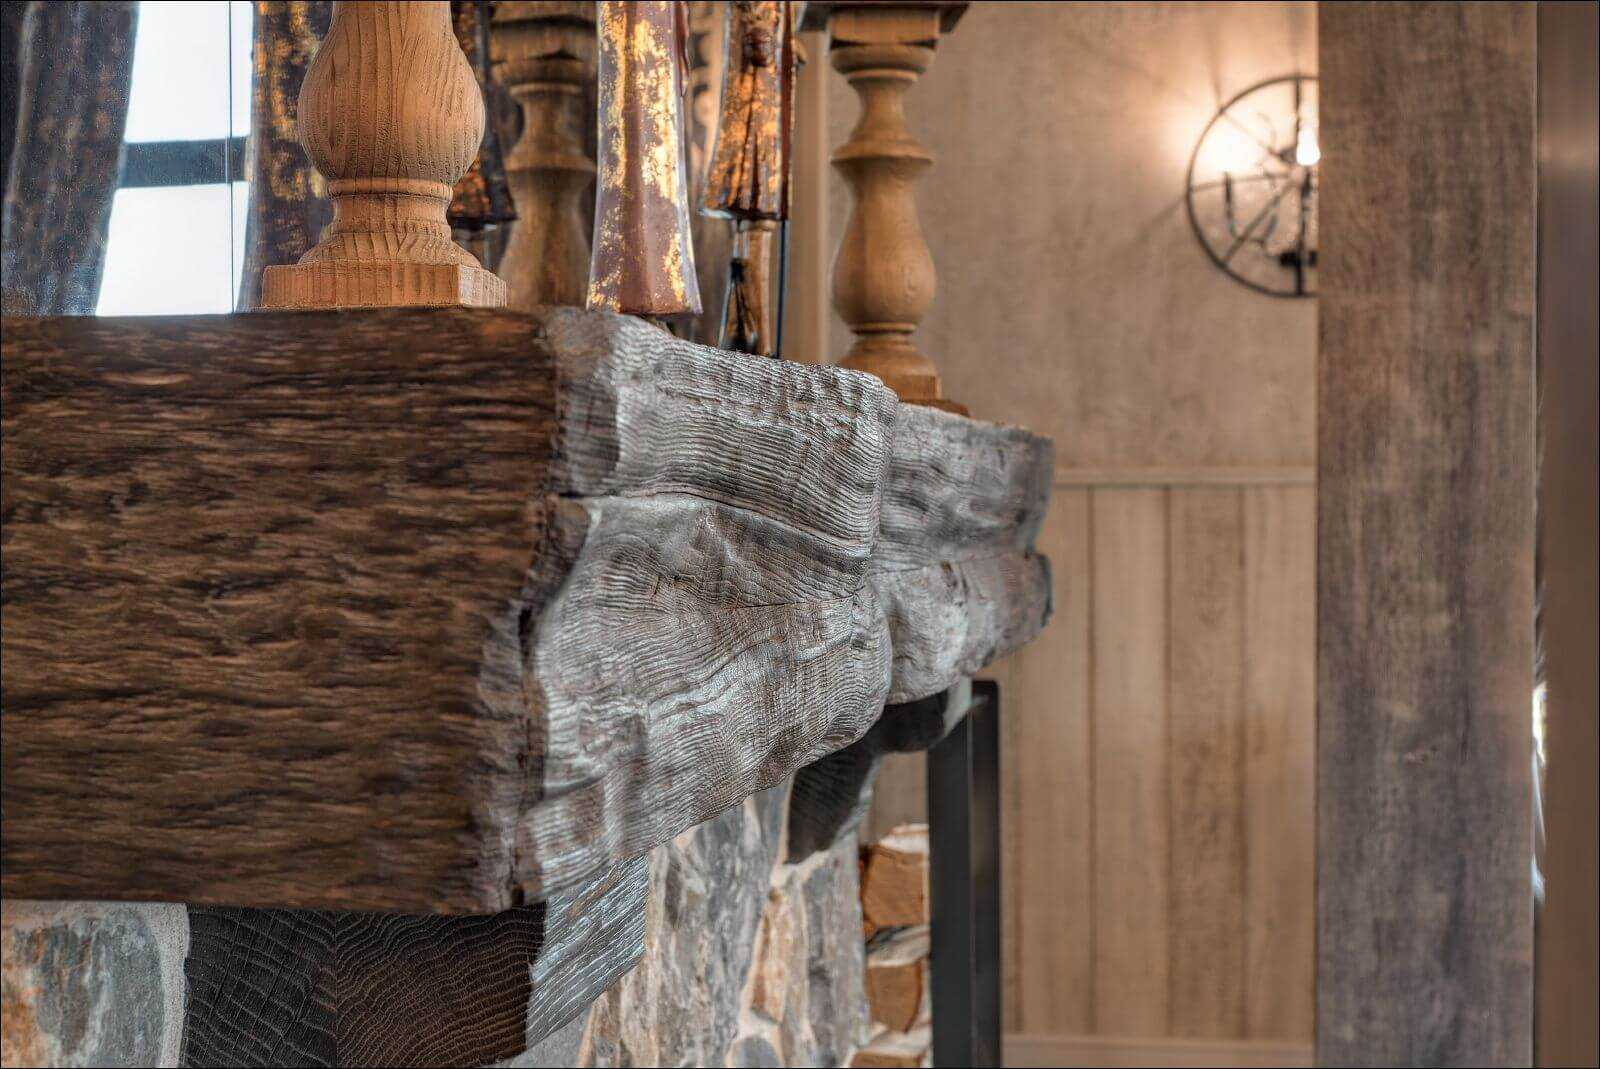 Details of live edge wooden fireplace hearth finished with Rubio Monocoat.